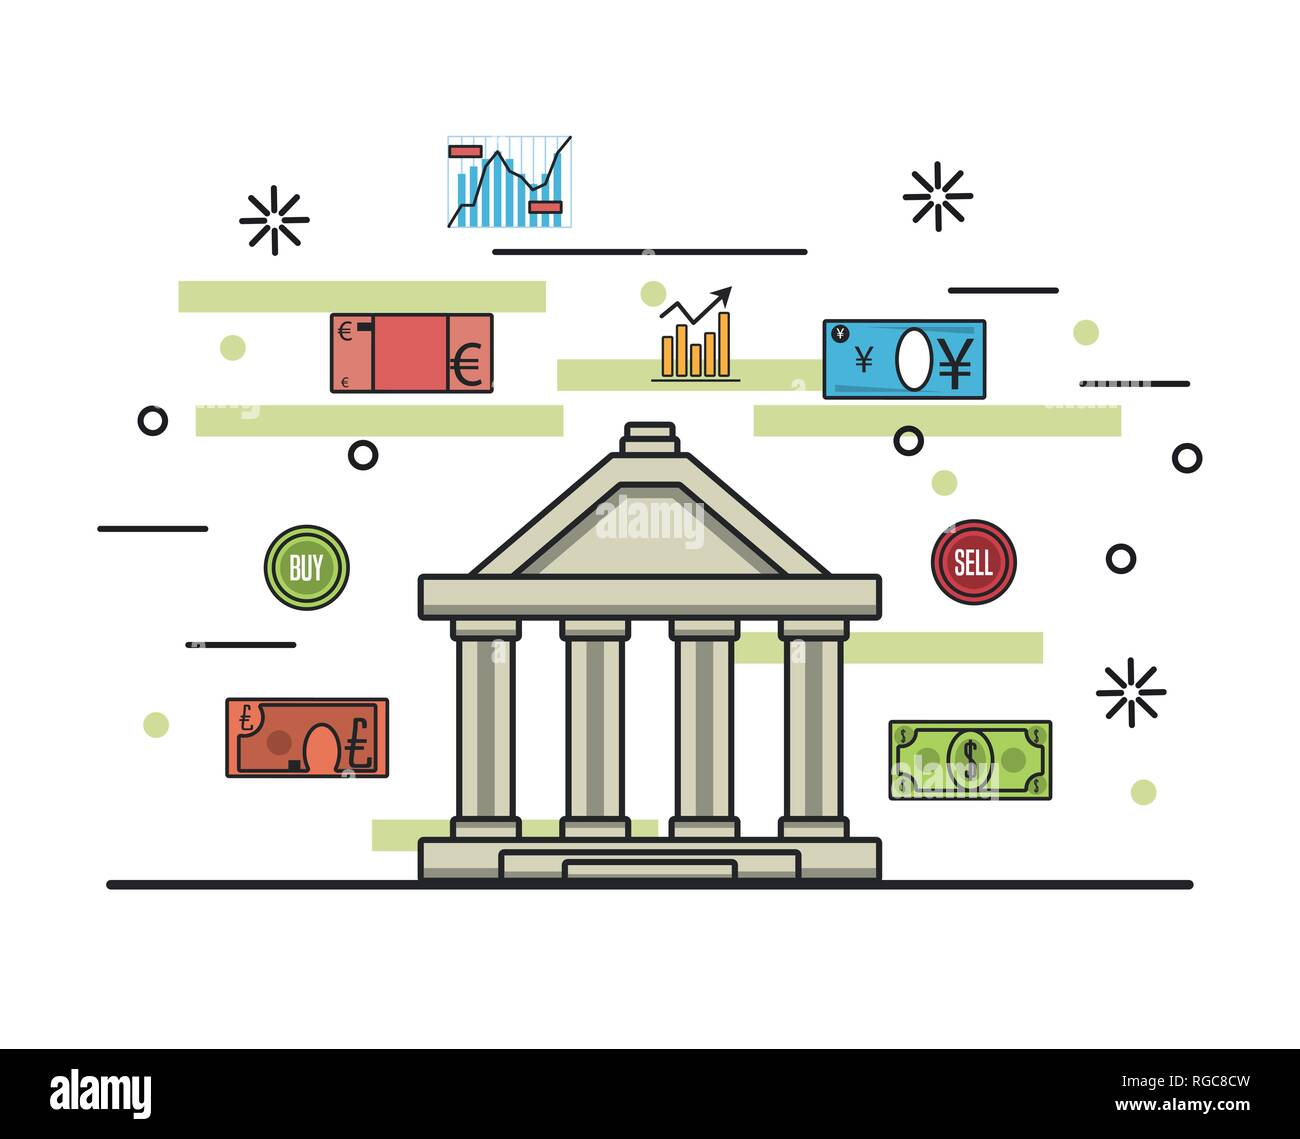 Business money and investments - Stock Image